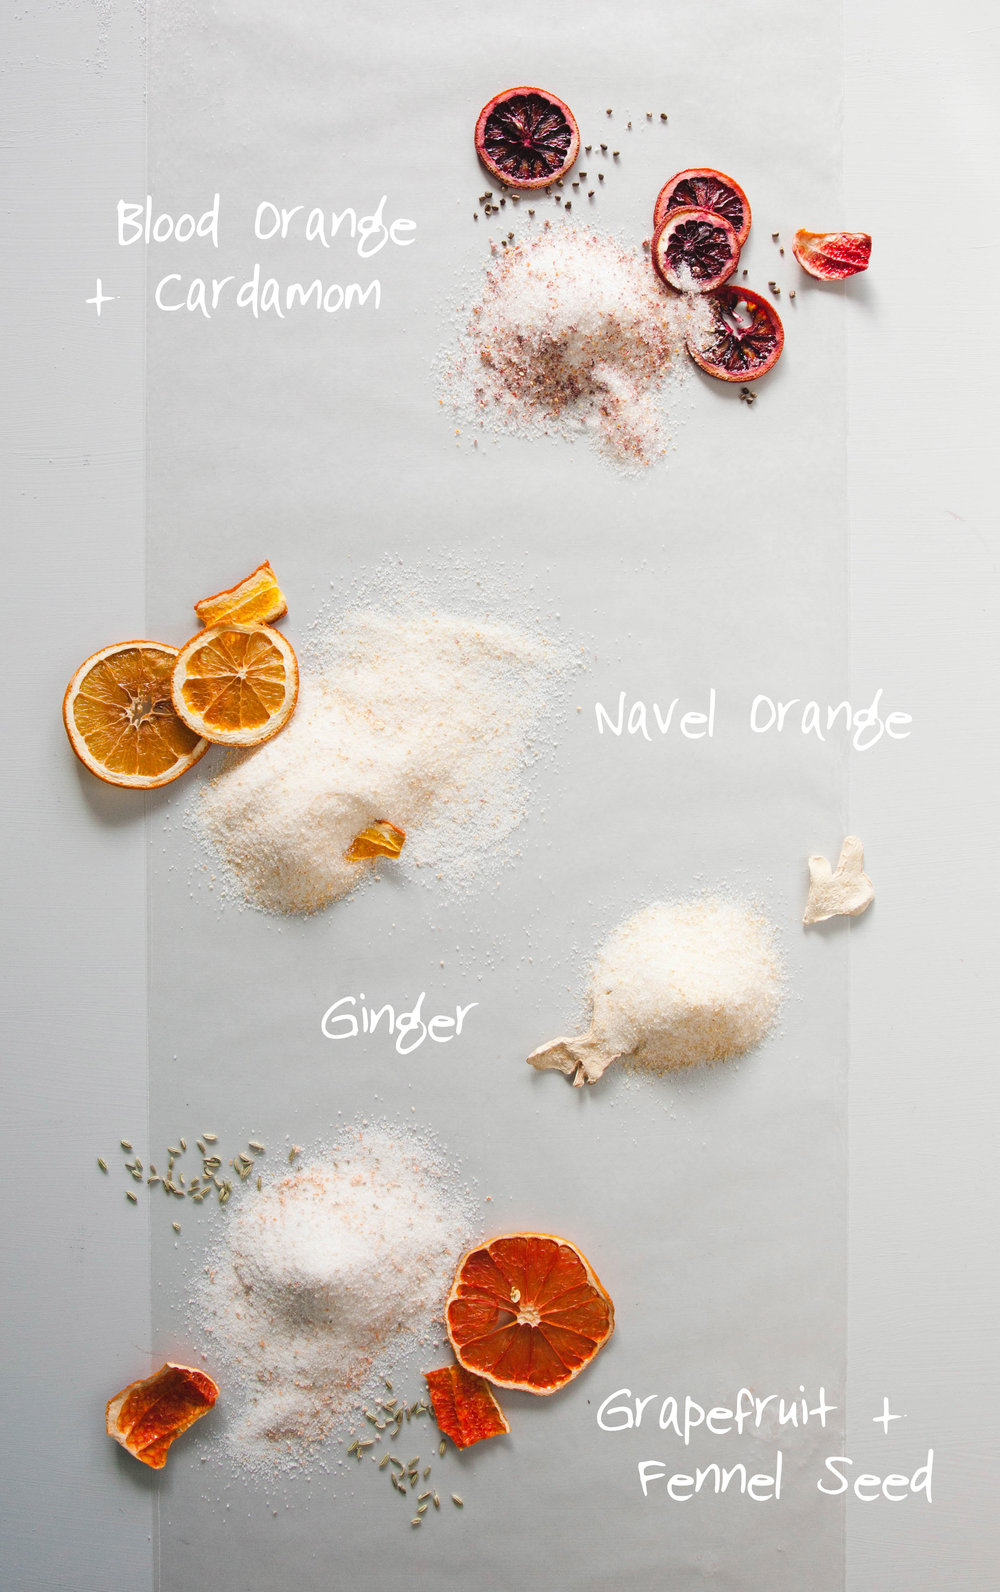 Flavored Sugar and Salt